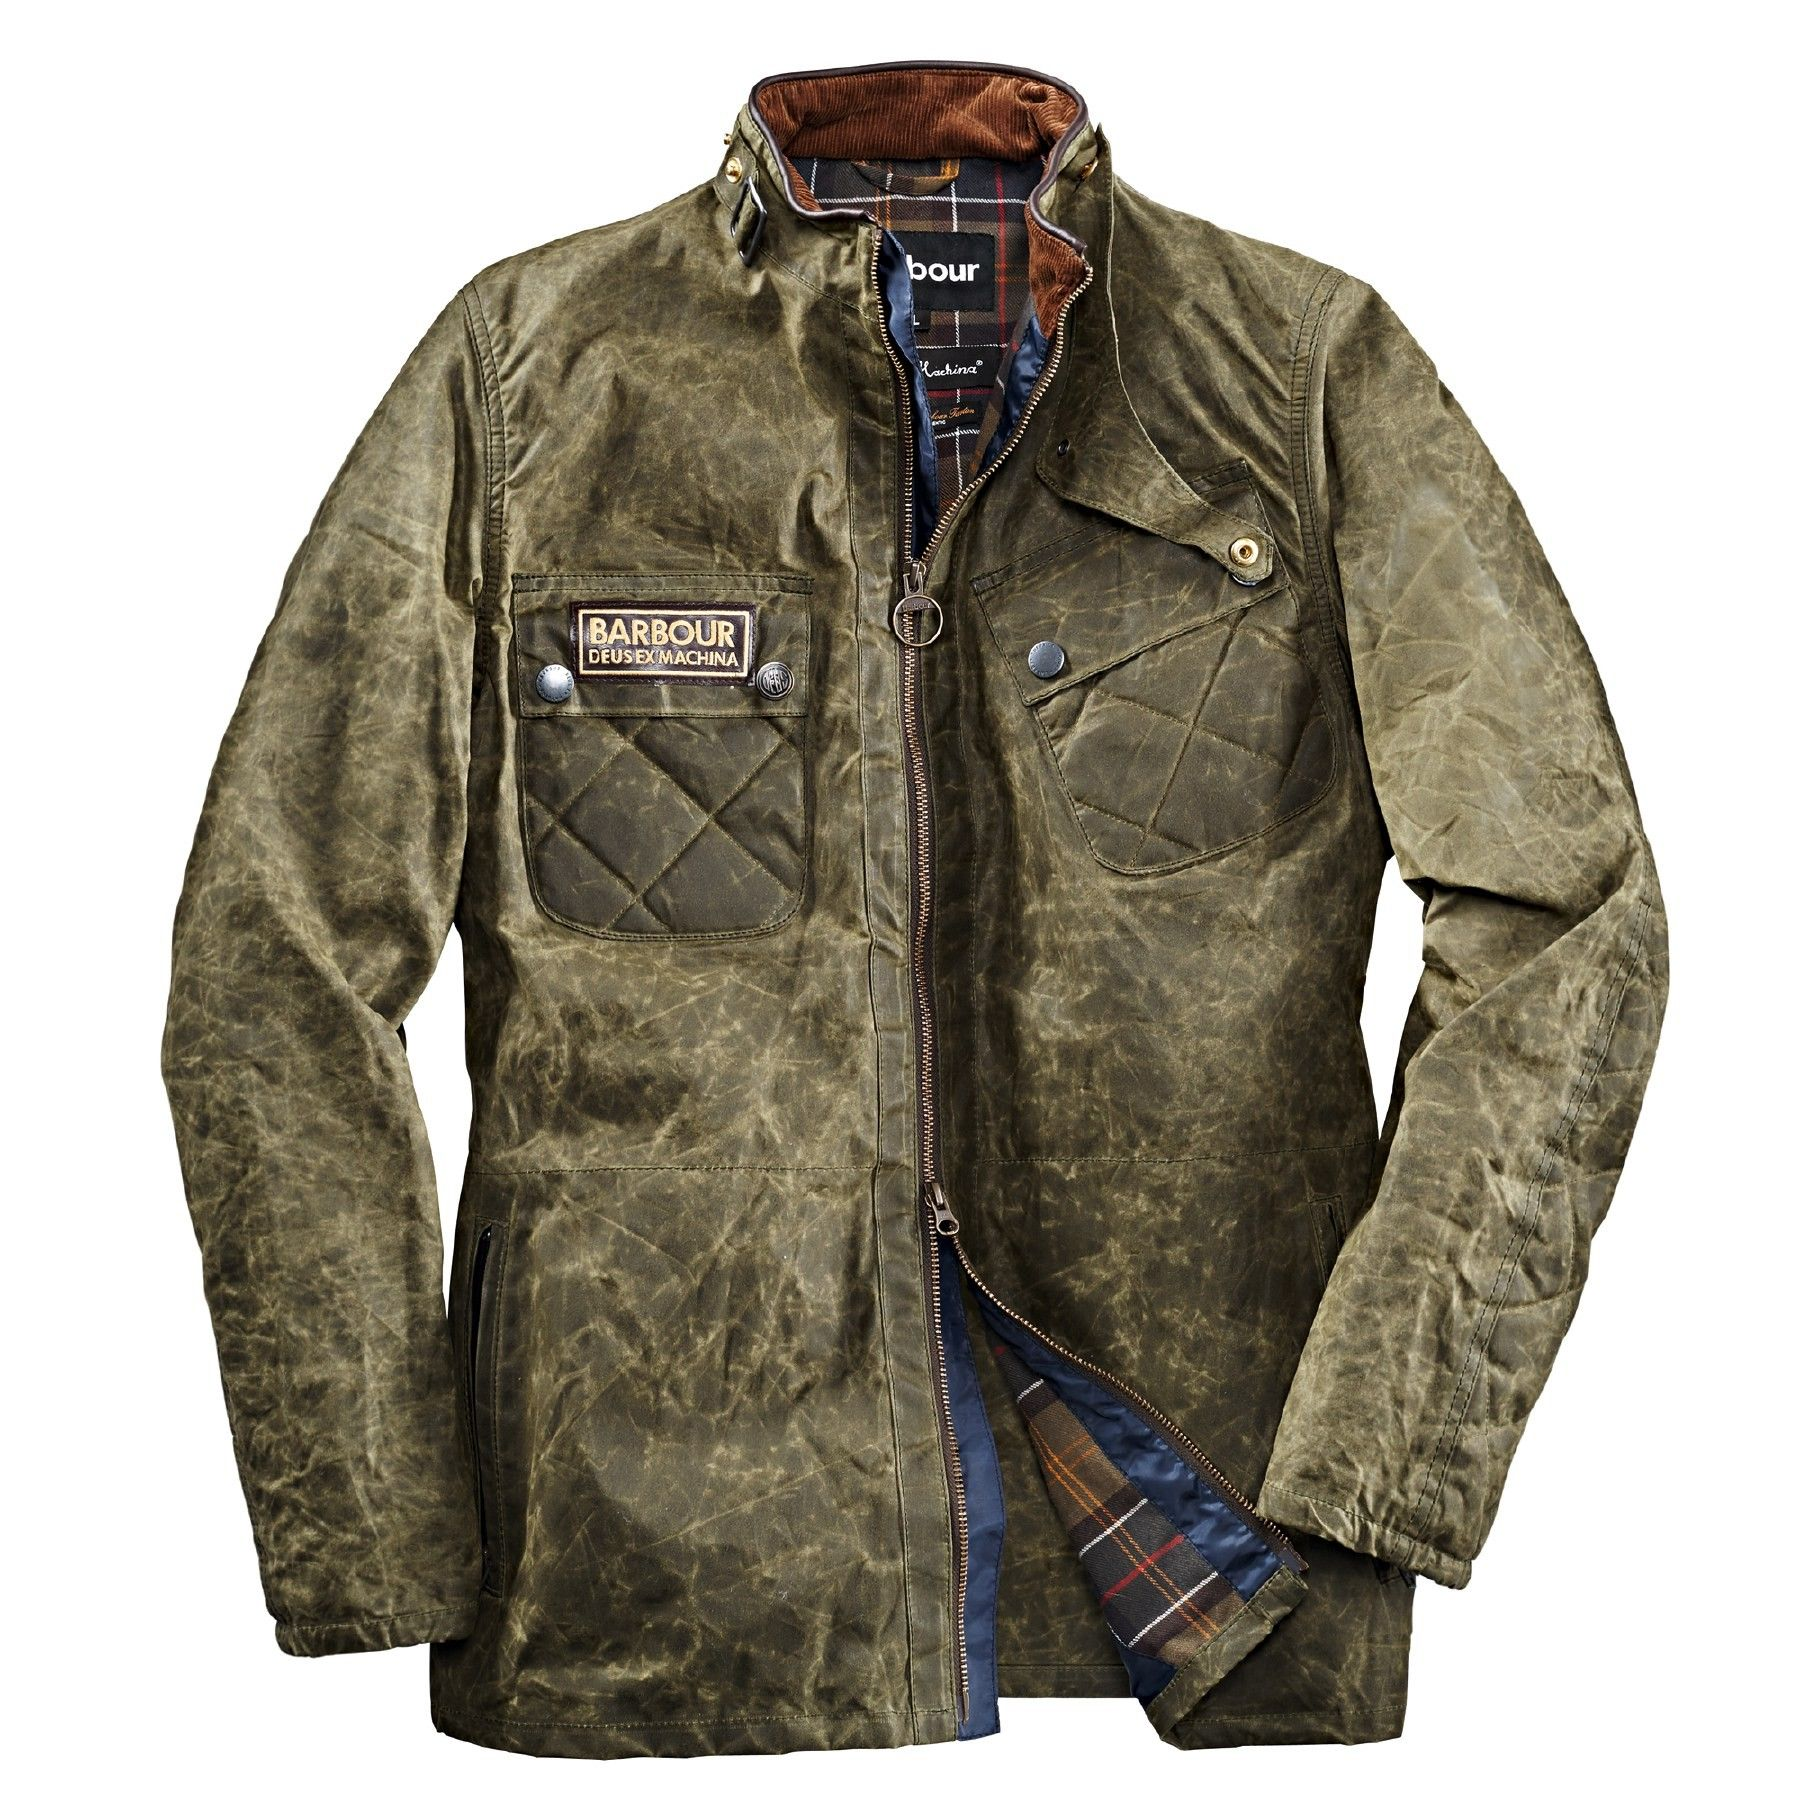 Coole Jacken Barbour X Deus Ex Machina Wachsjacke Devonport Barbour